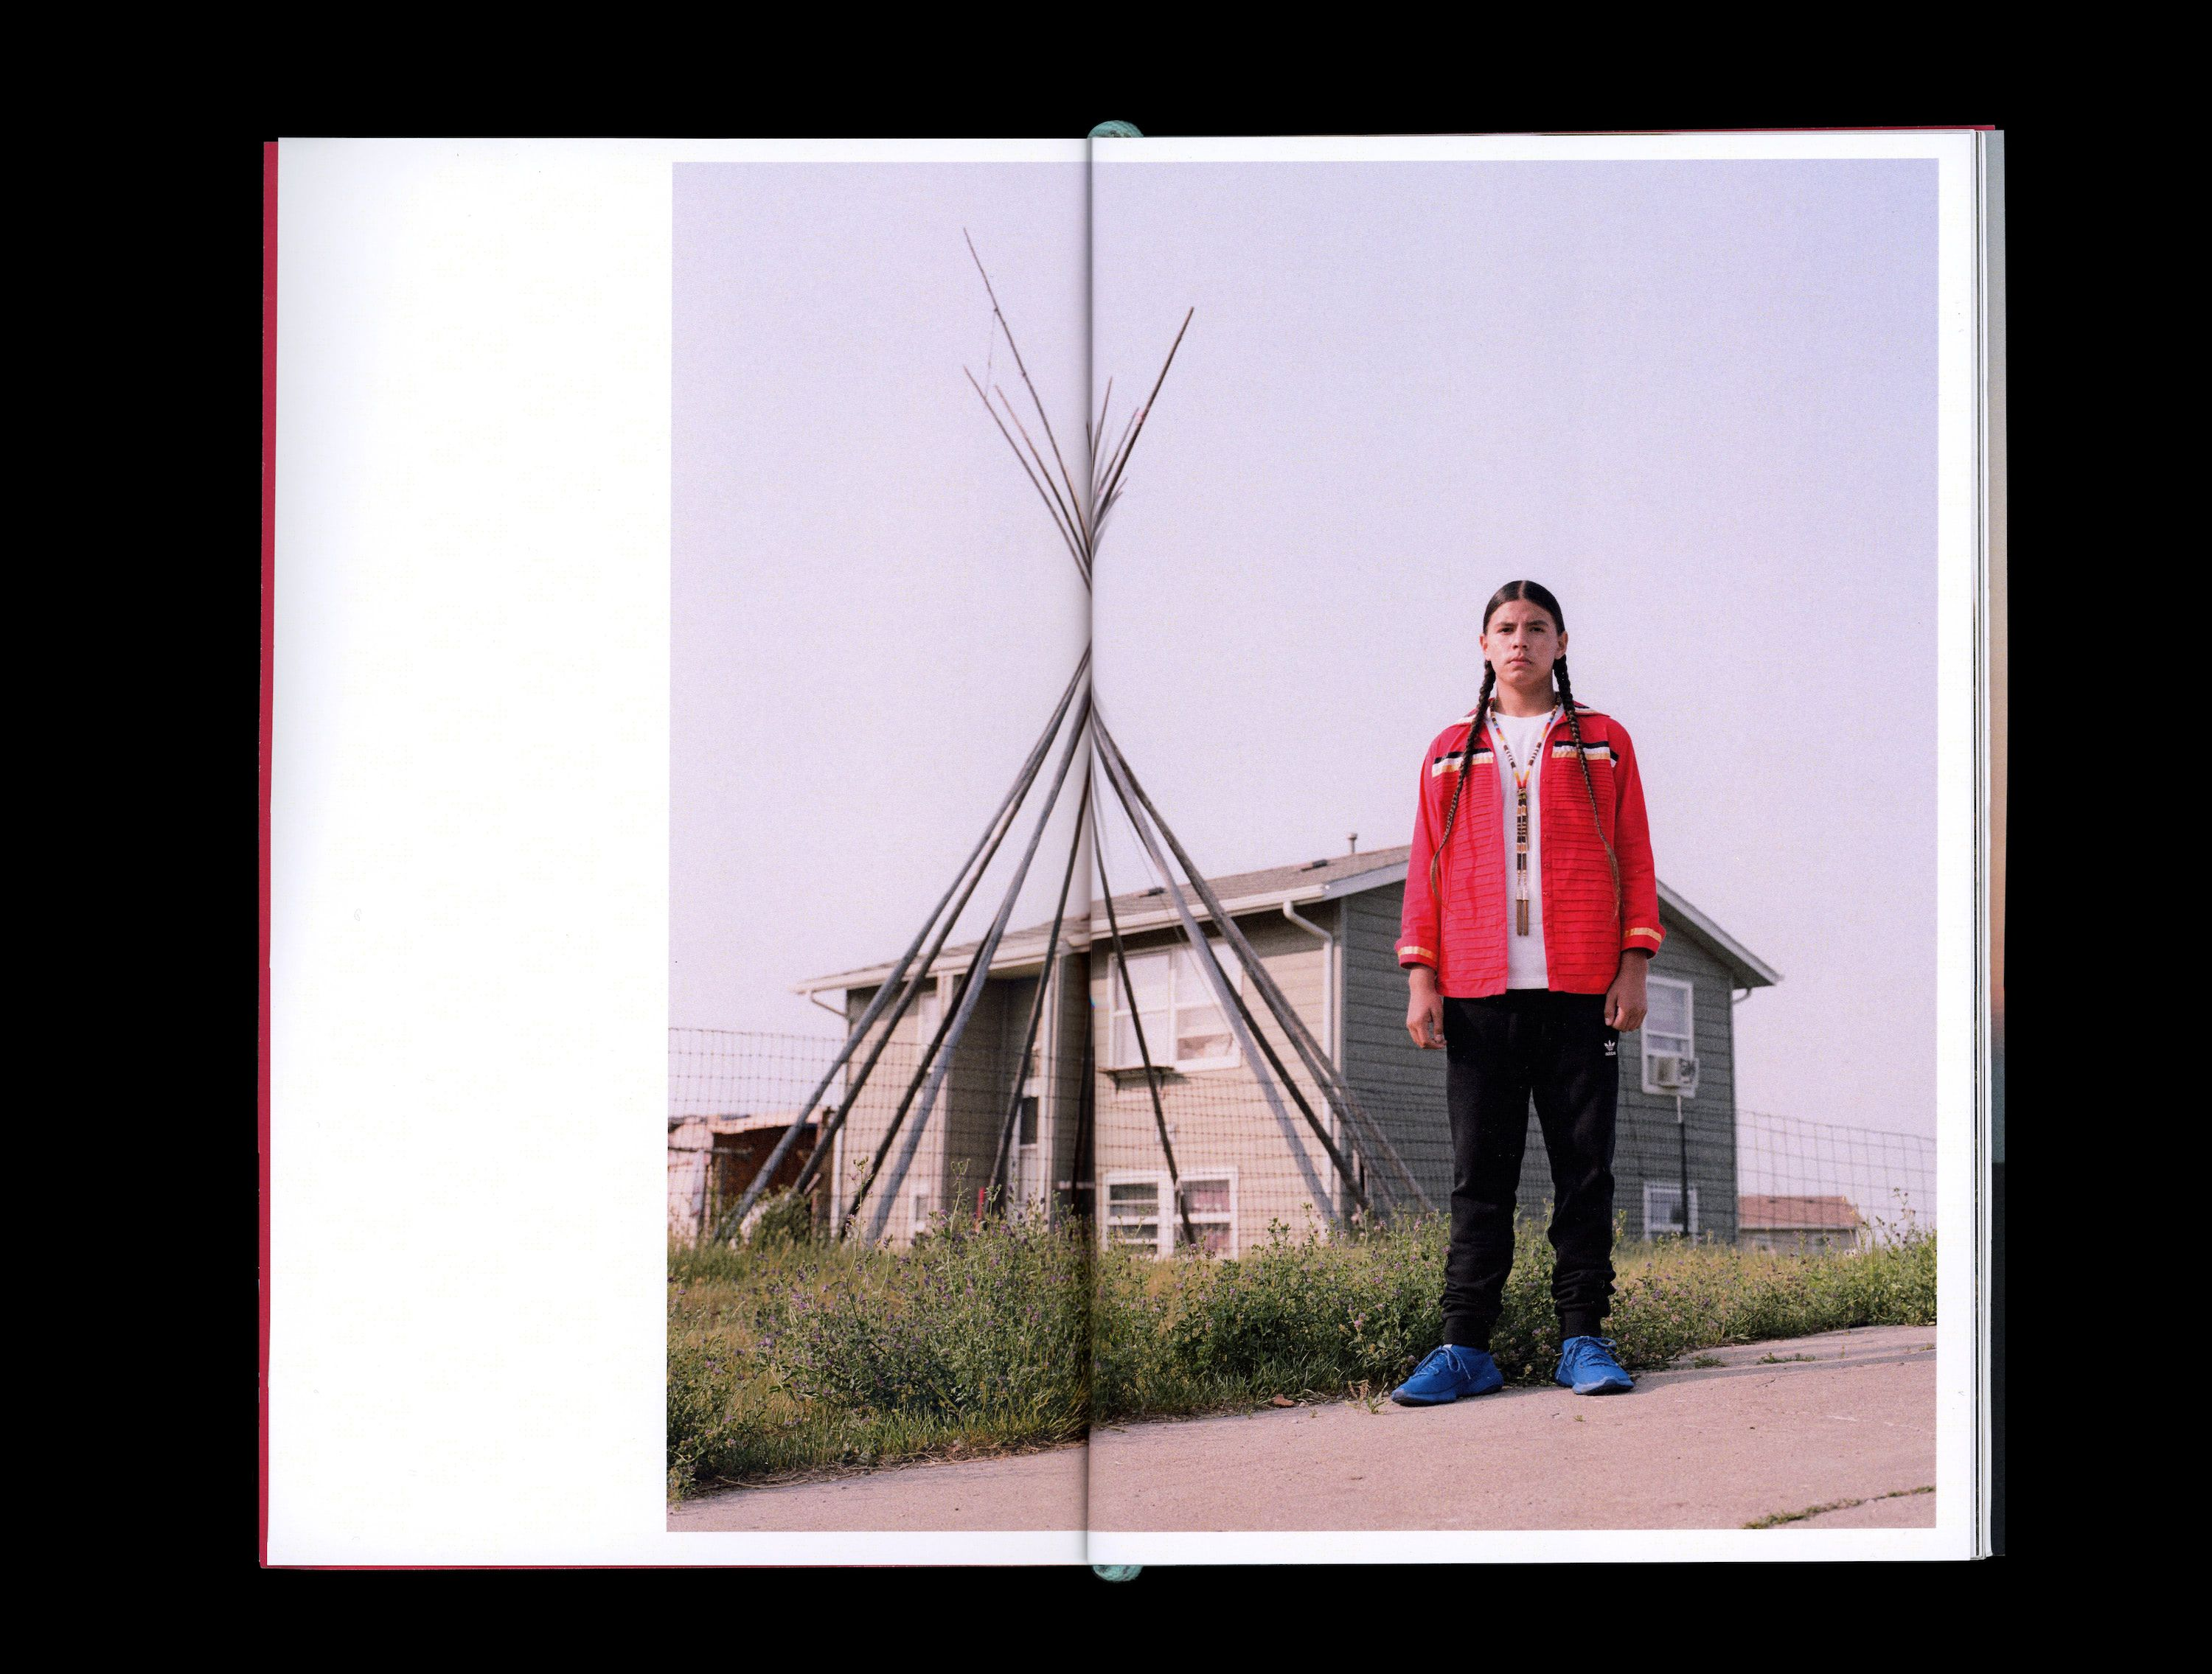 Photograph in book of Zaniyan Iron Eyes standing in front of house and teepee frame